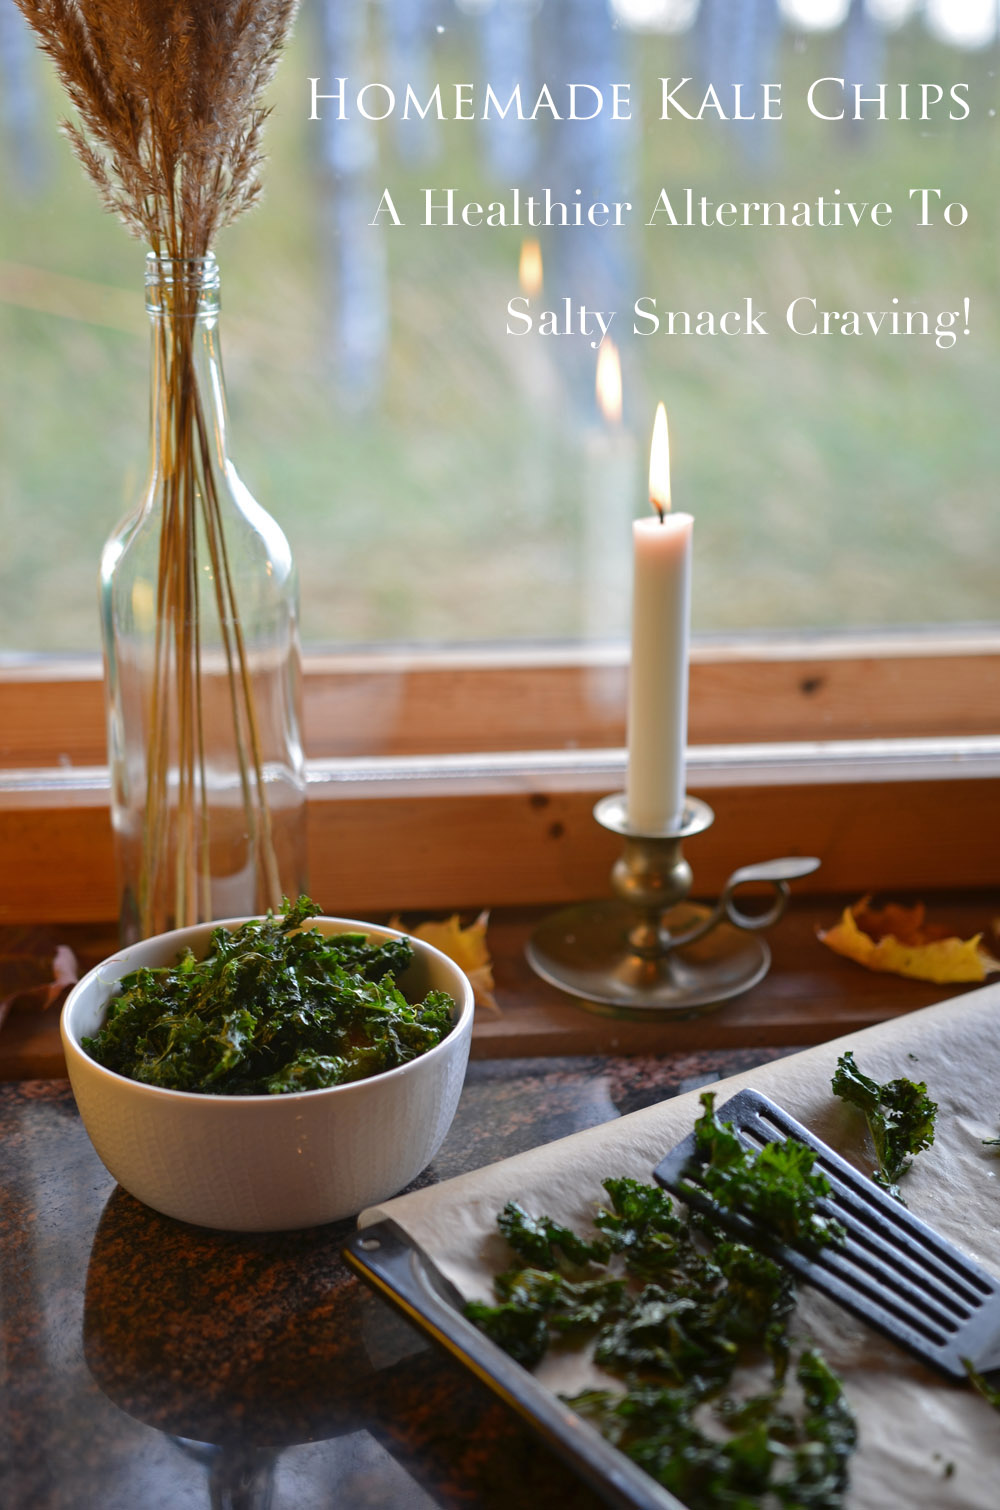 recipe-for-simple-kale-chips-healthier-alternative-to-salty-craving